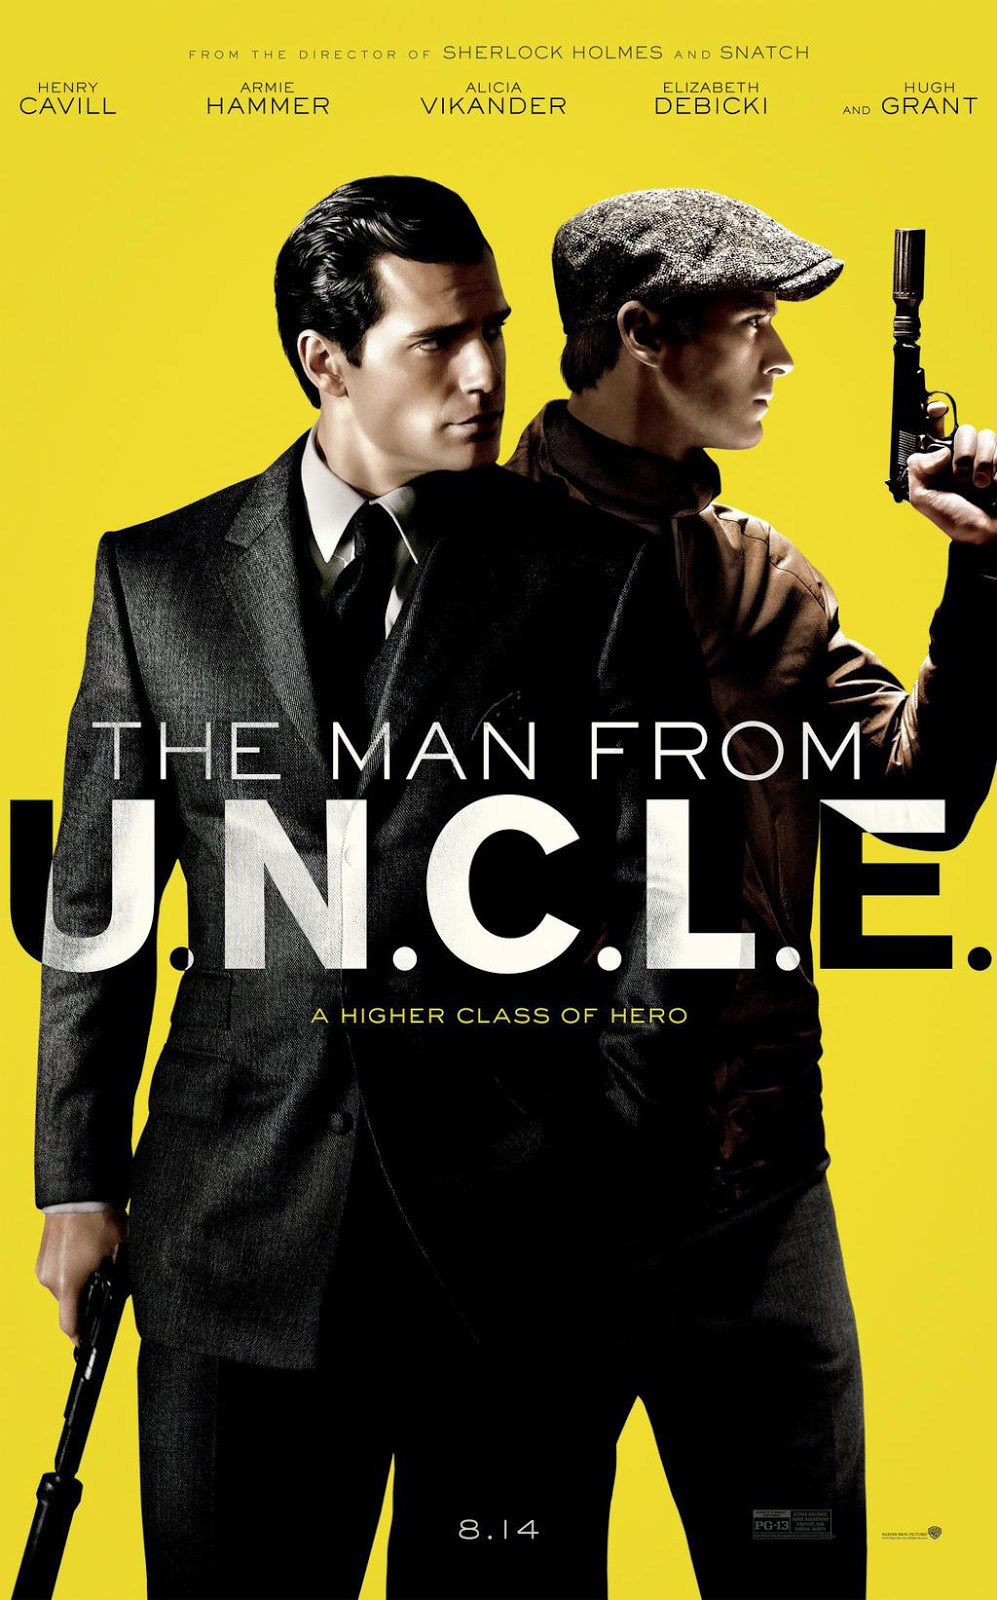 man frome uncle trailer poster